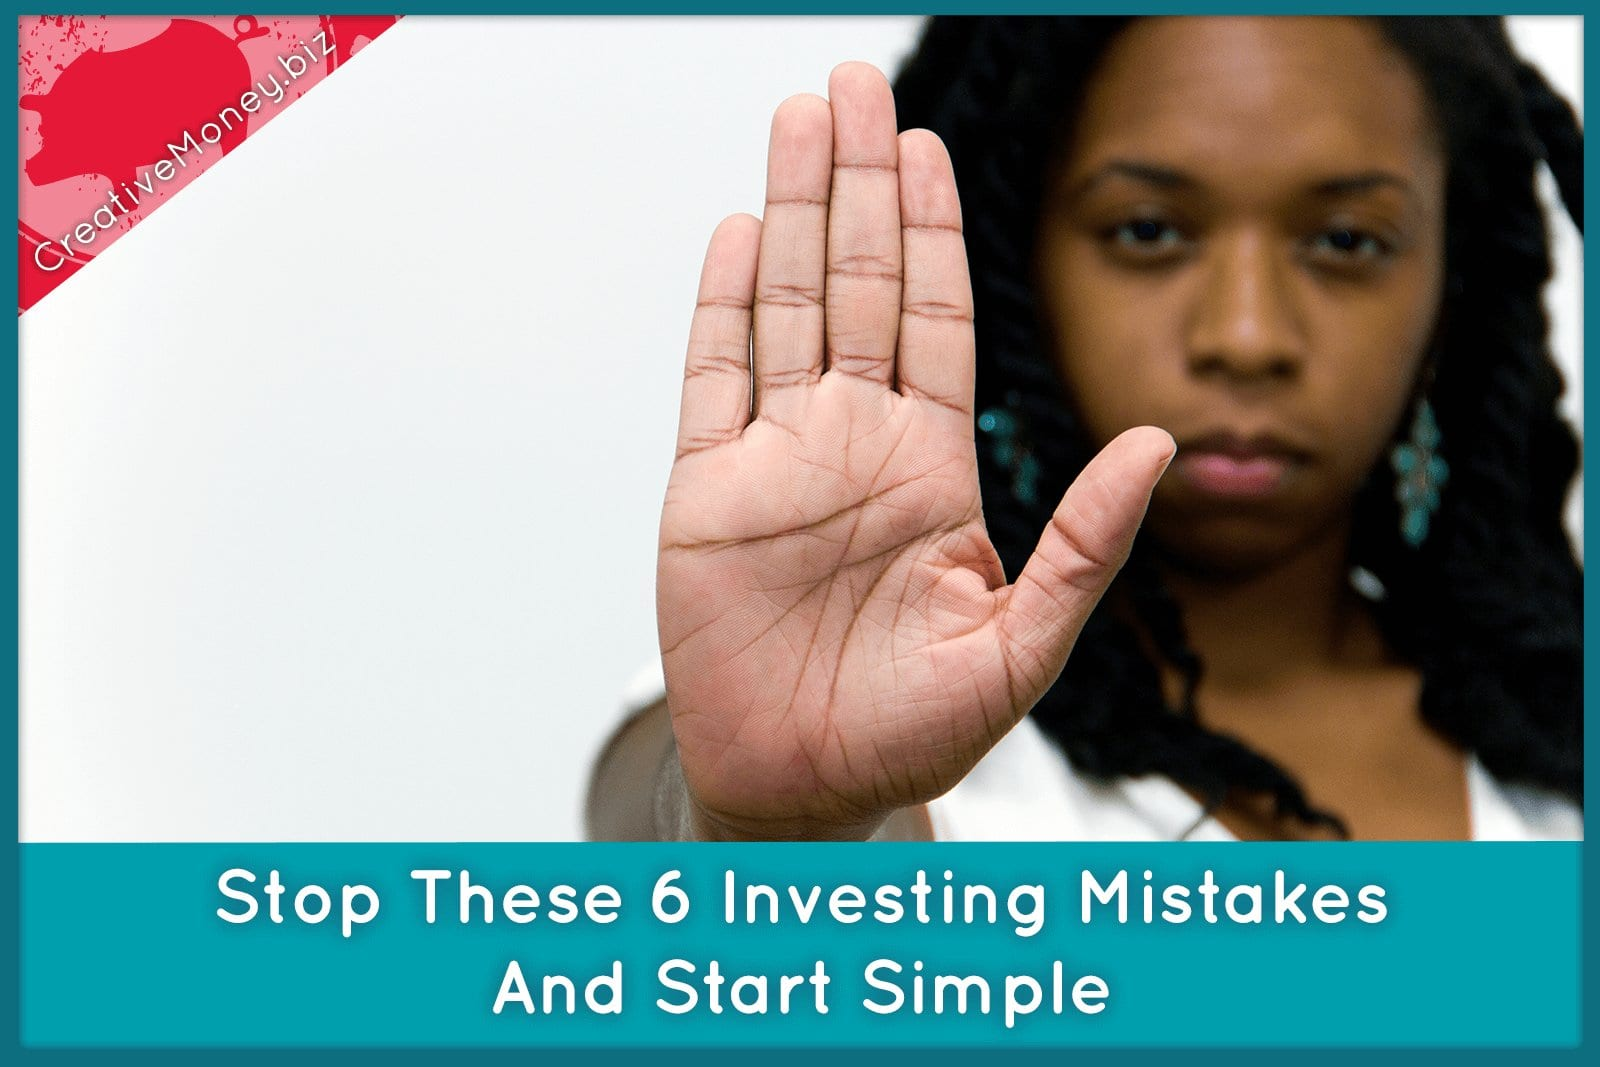 Stop These 6 Investing Mistakes And Start Simple